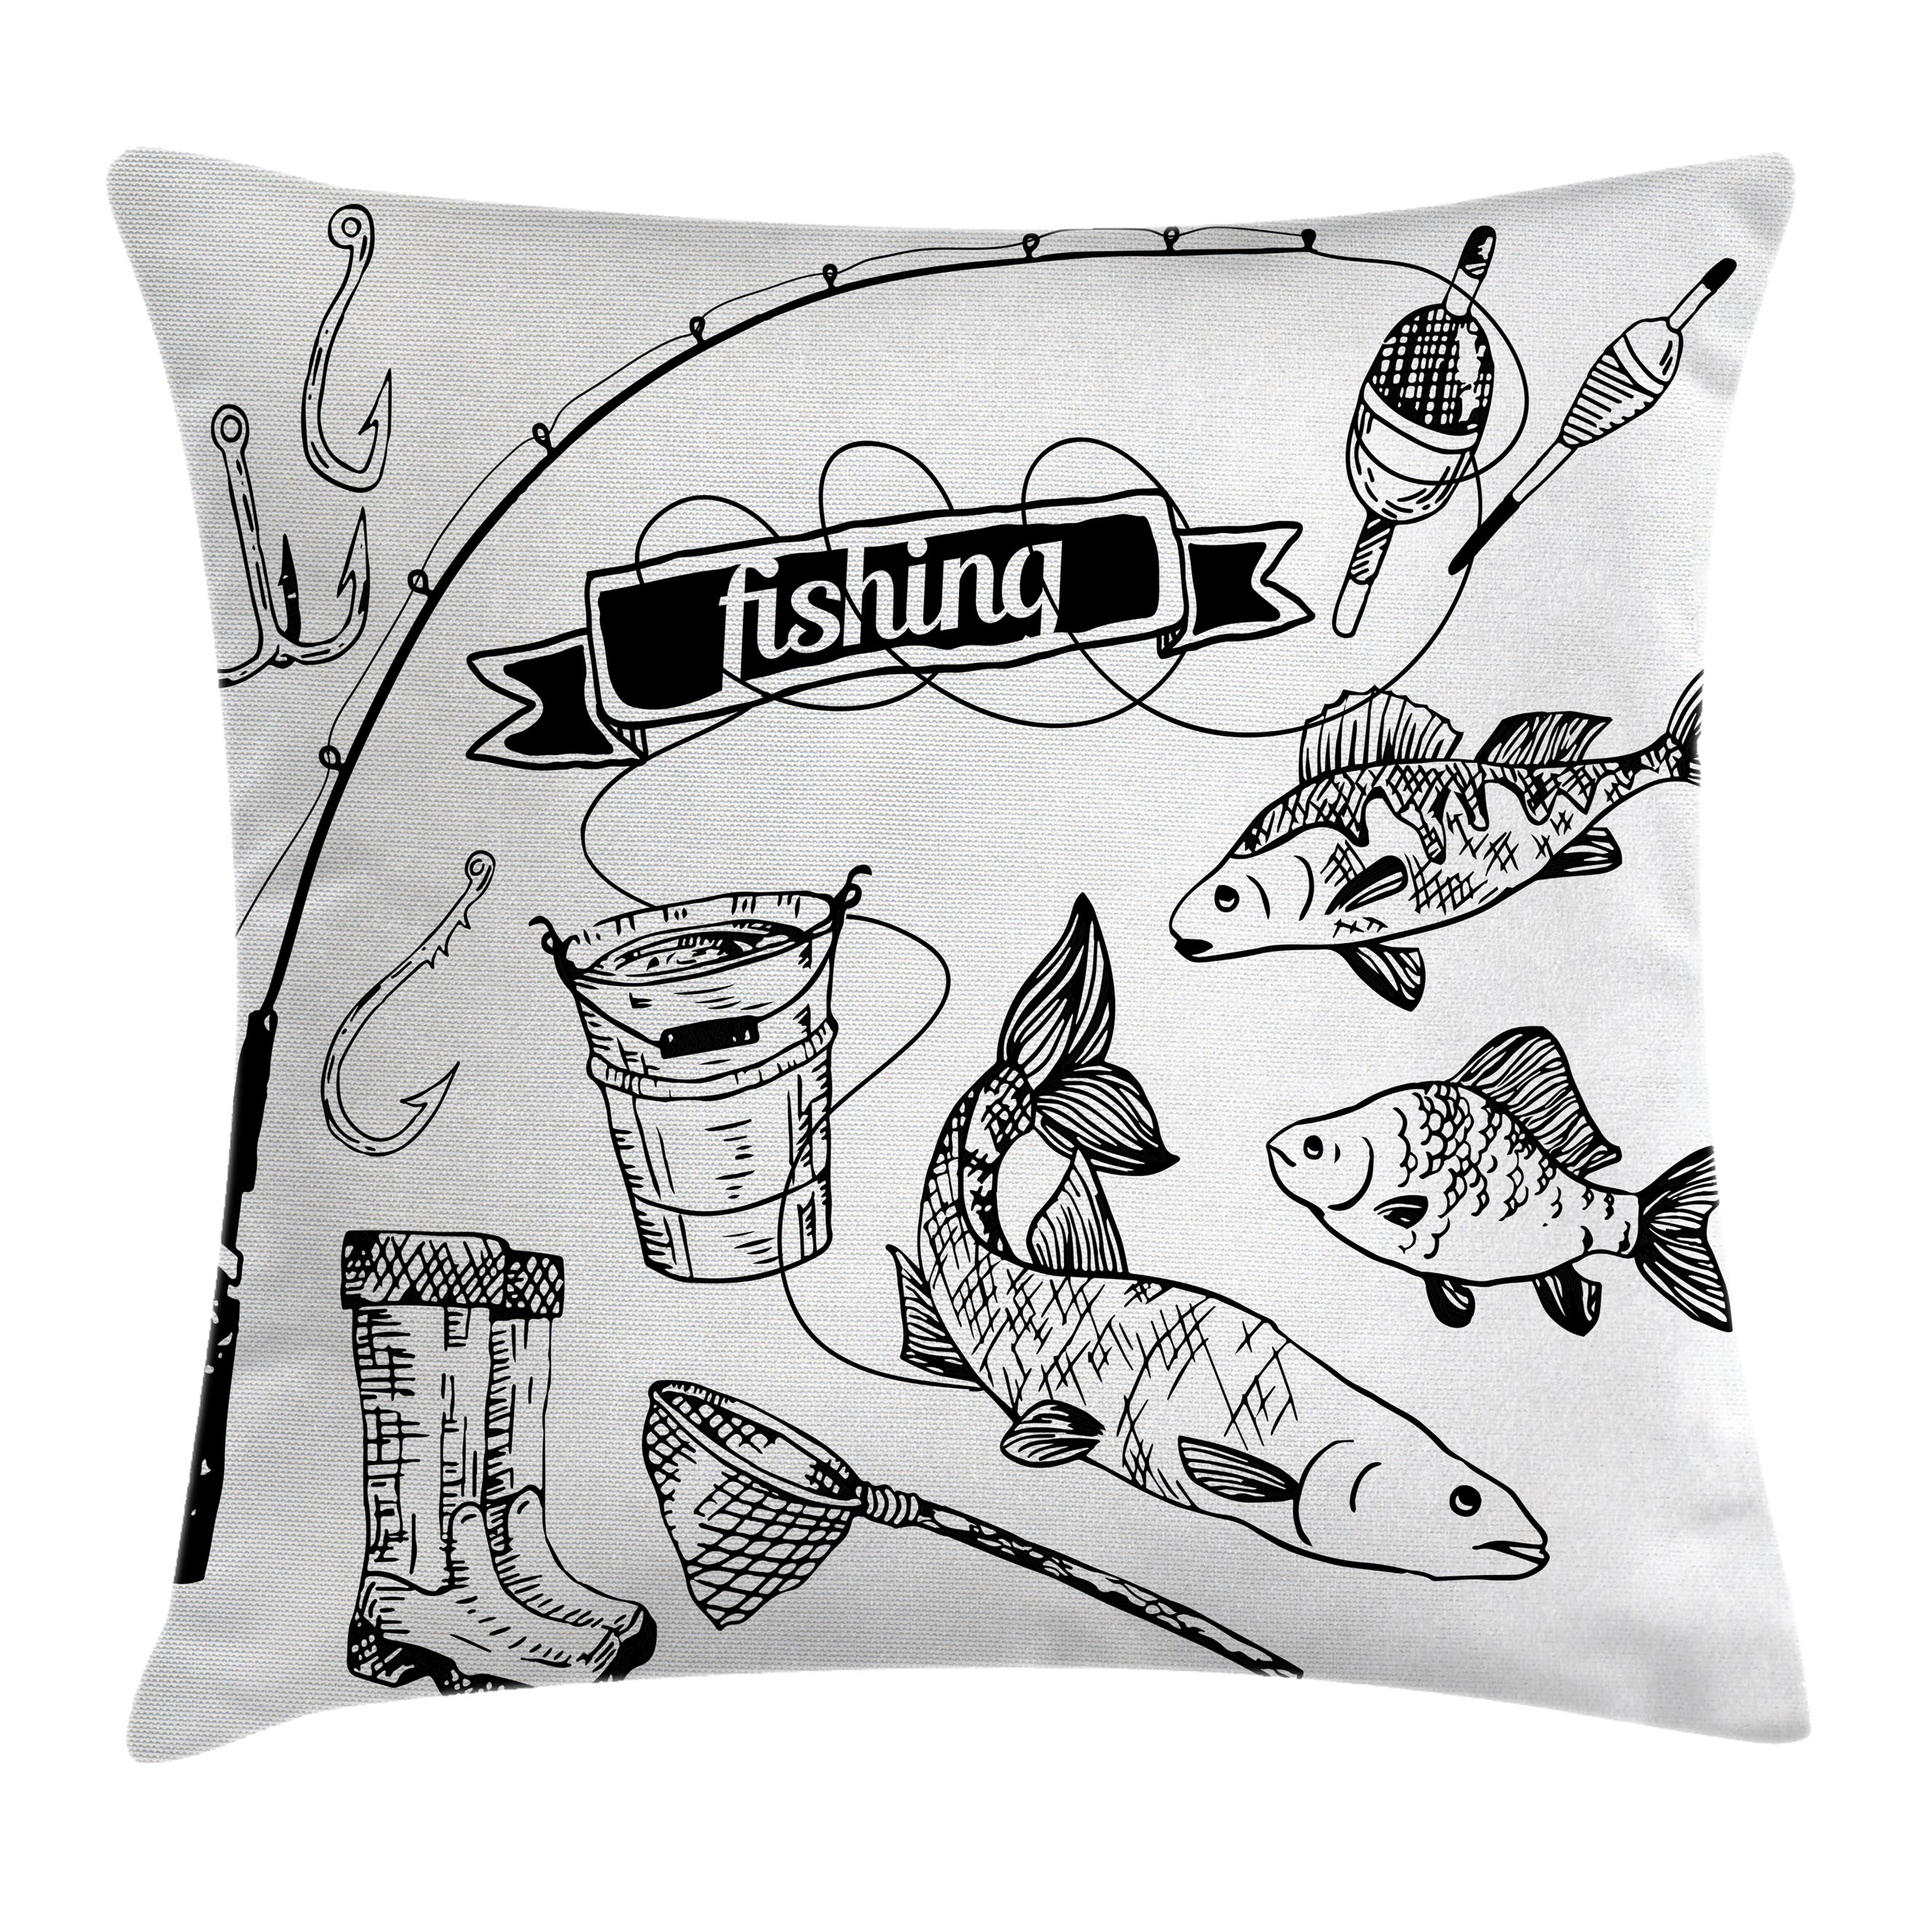 Fishing Decor Throw Pillow Cushion Cover, Hand Drawn Fishing Tools Set with Rod Salmon Perch Bucket Net Float Ribbon, Decorative Square Accent Pillow Case, 20 X 20 Inches, Black White, by Ambesonne